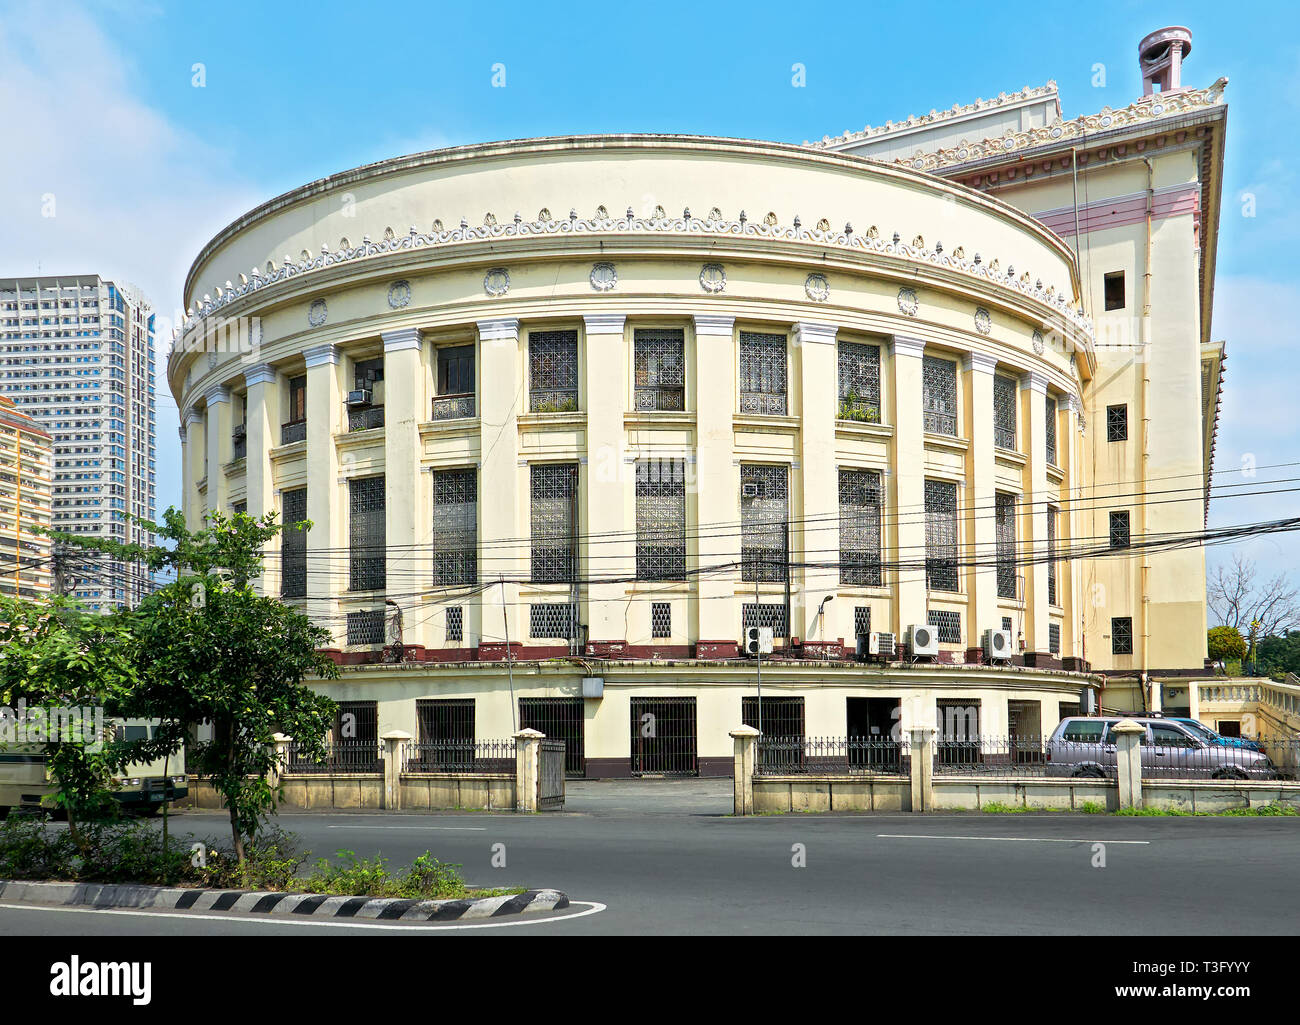 Manila, Philippines: Side view of the historical Manila Central Post Office building in Lawton, Ermita, near the Pasig River - Stock Image